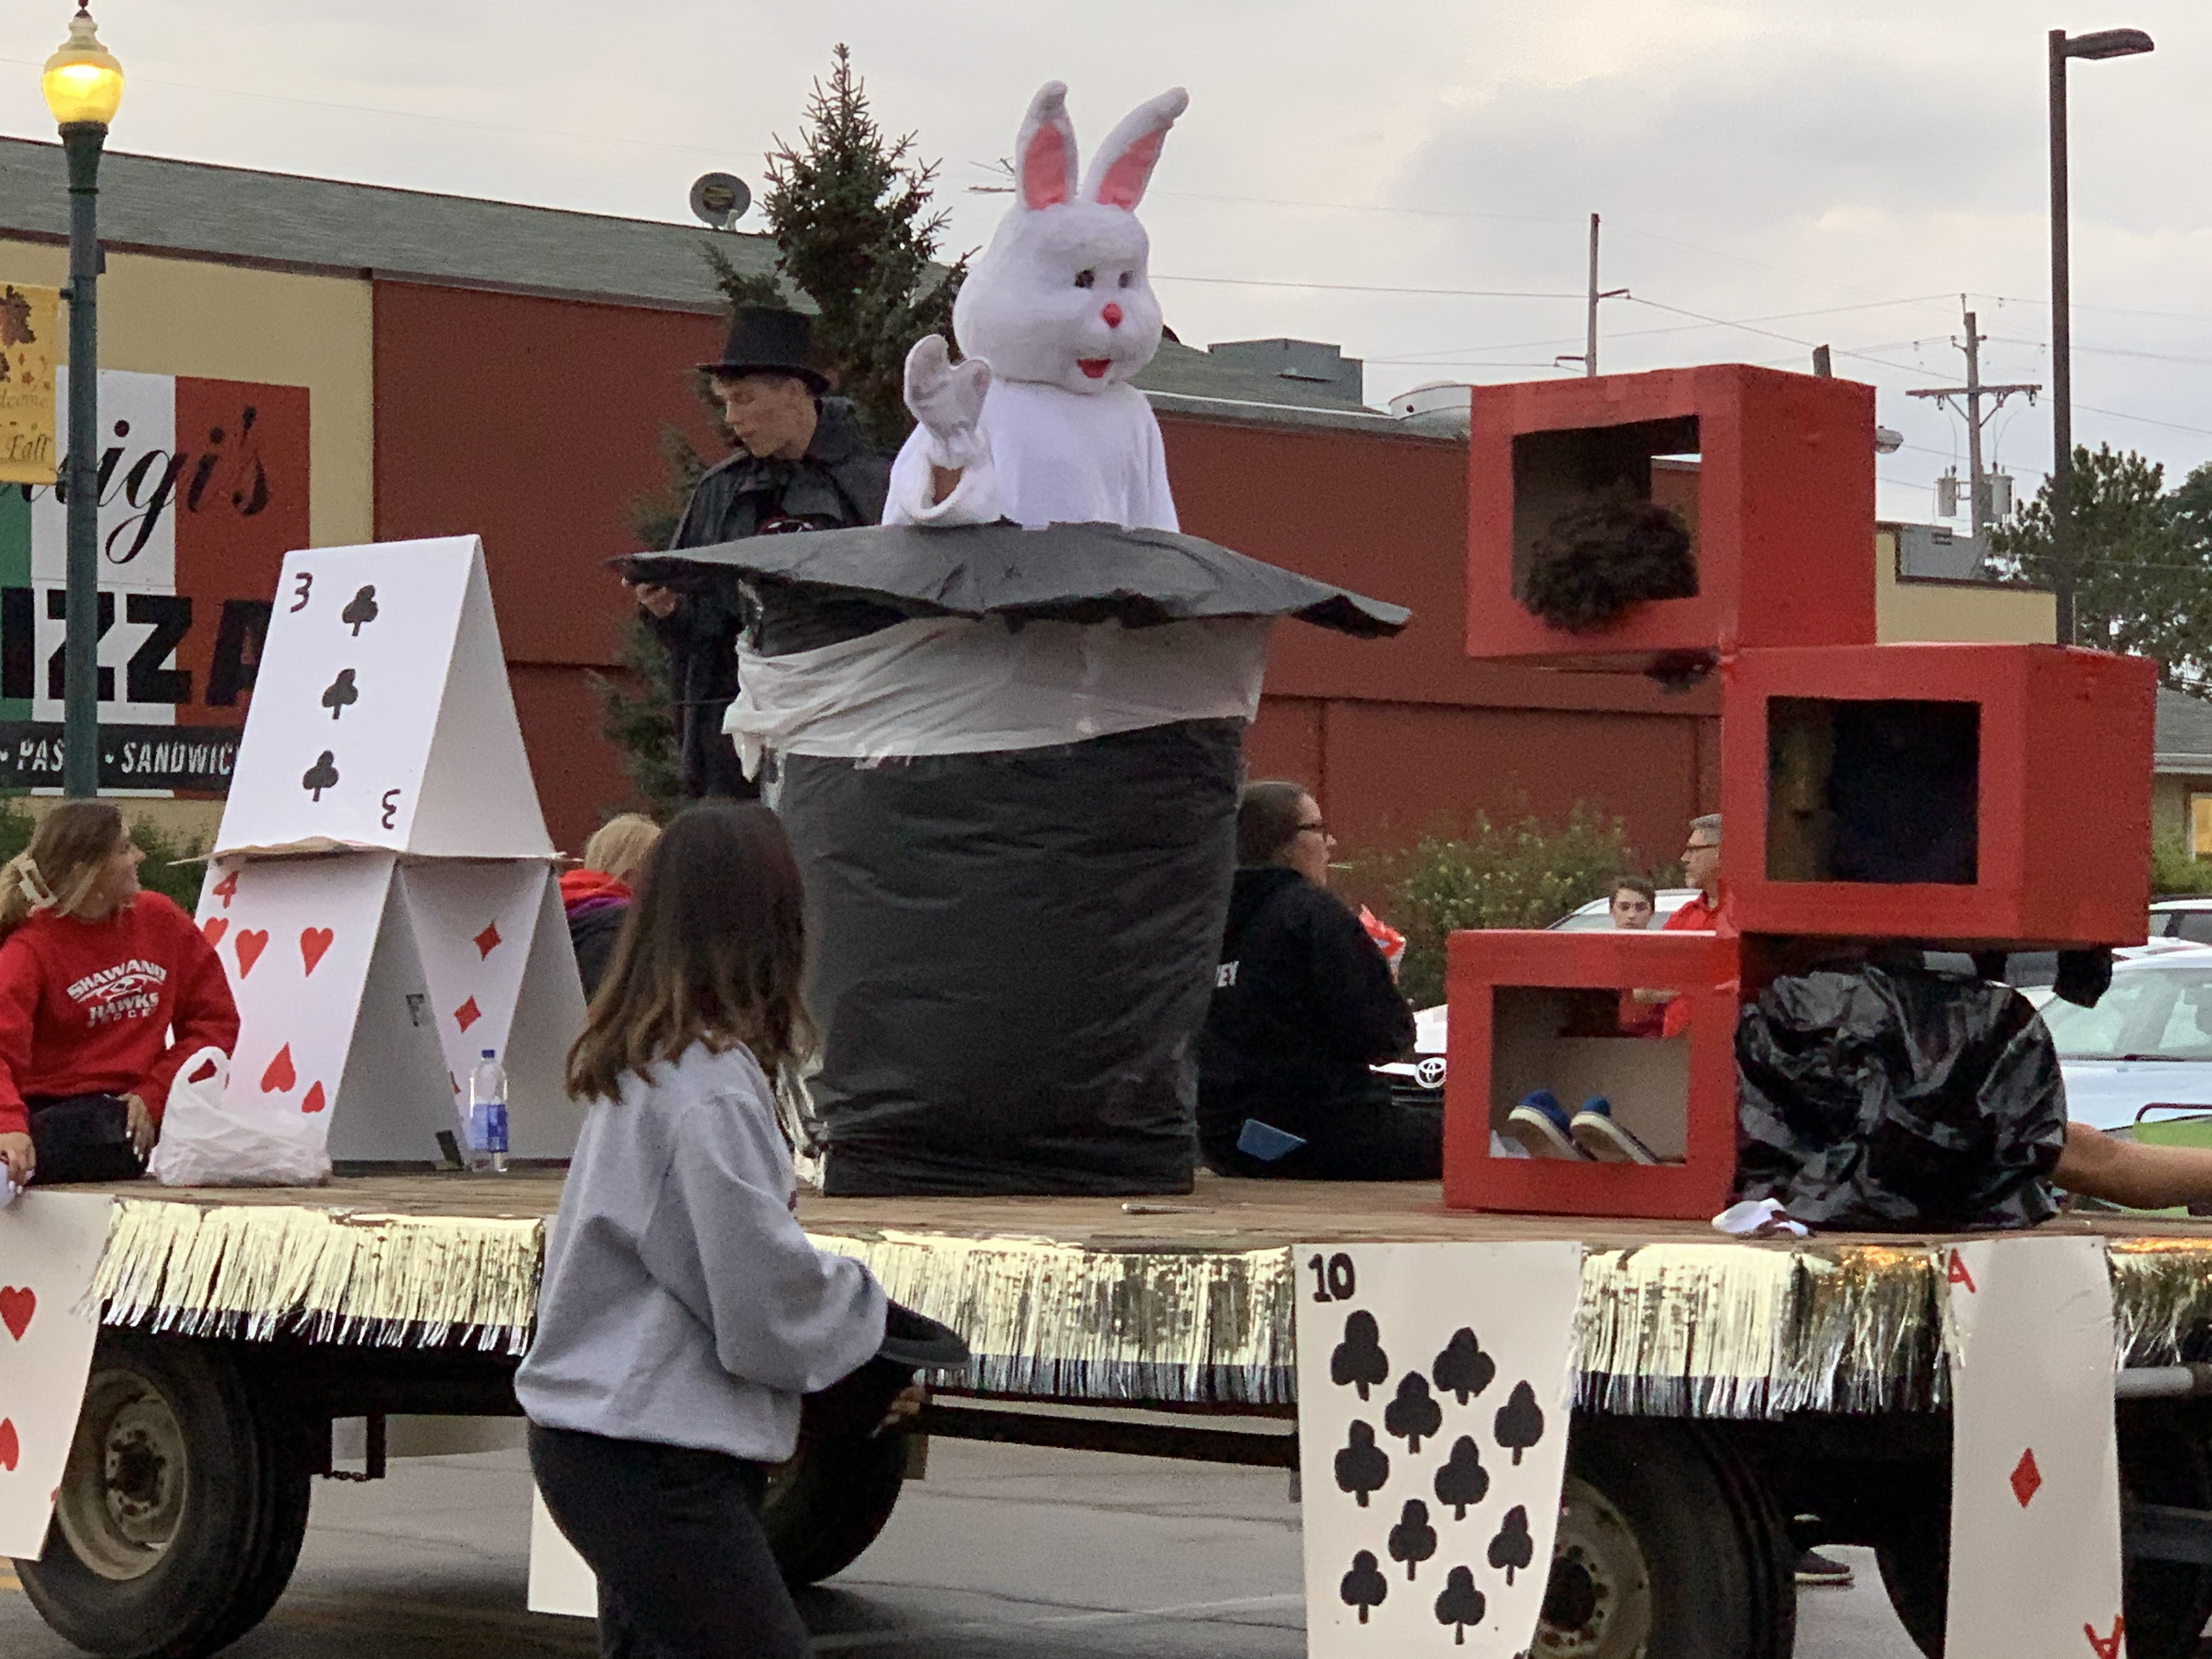 """To fit with the theme of """"magic happens,"""" a float travels down Main Street featuring playing cards and a human-sized rabbit coming out of a top hat during the homecoming parade on Sept. 24.Luke Reimer 